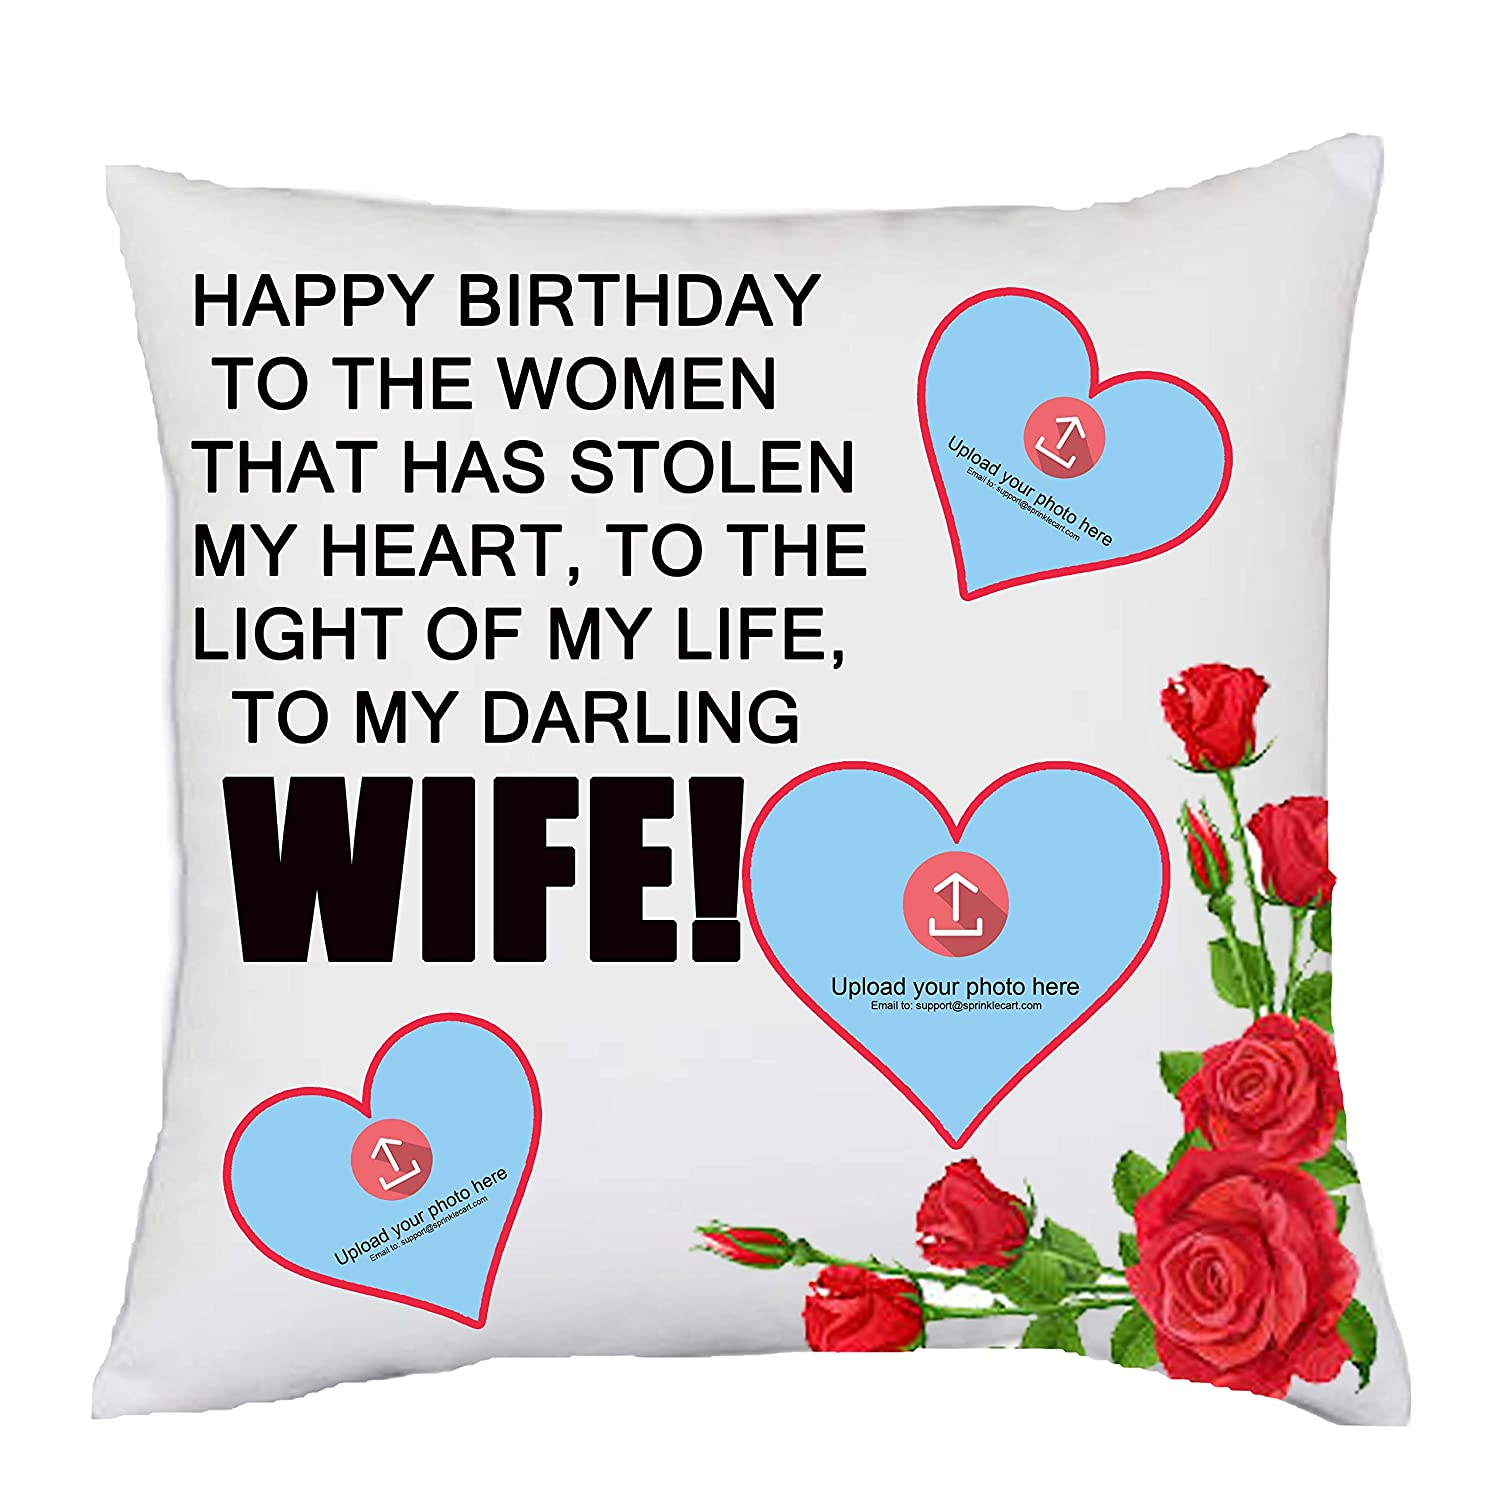 Buy Sprinklecart Happy Birthday Wishes To Wife Pillow Gifts 15 X 15 With Filler Insert Online At Low Prices In India Amazon In